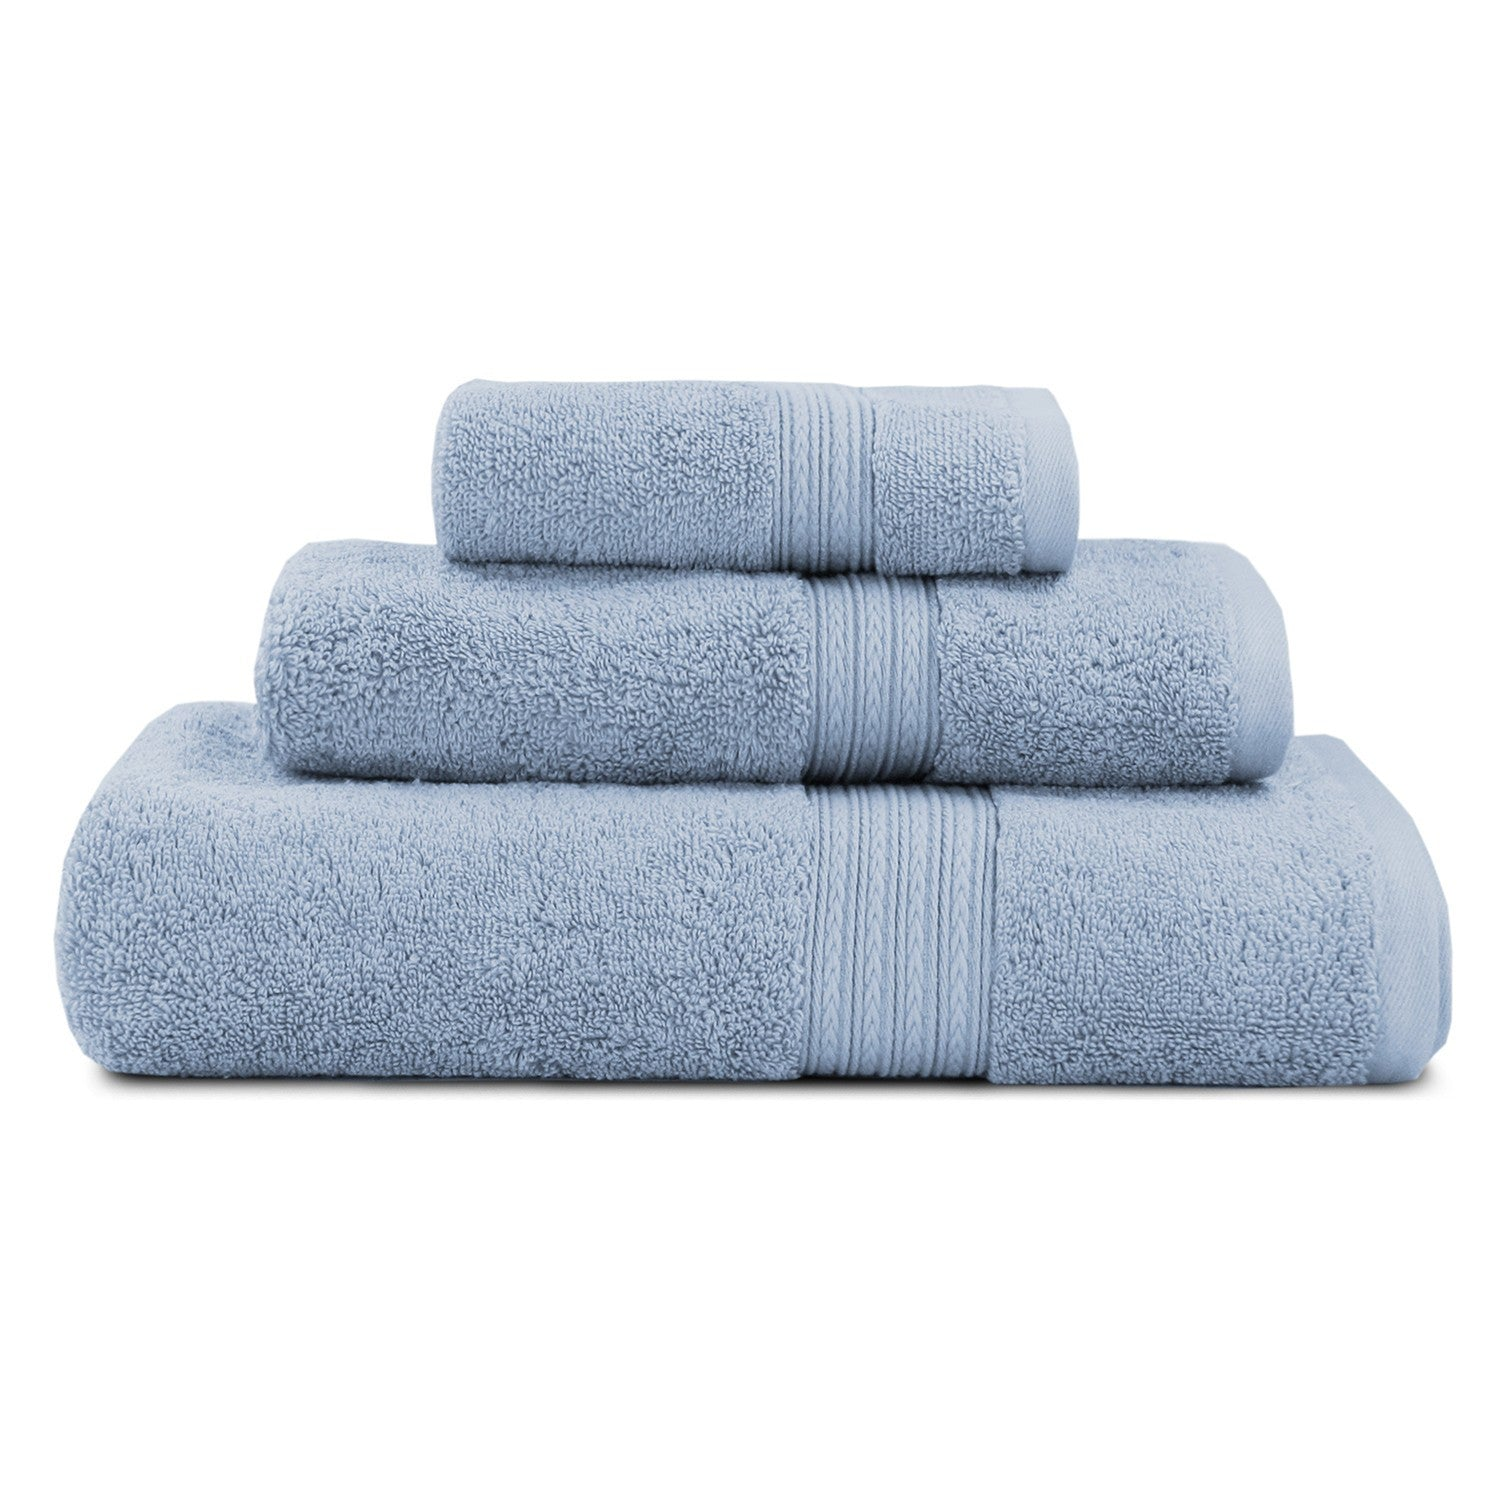 Home, Bathroom, Bath Towels - Maui Luxury Hotel Resort Bath Towels - Sets Of 3